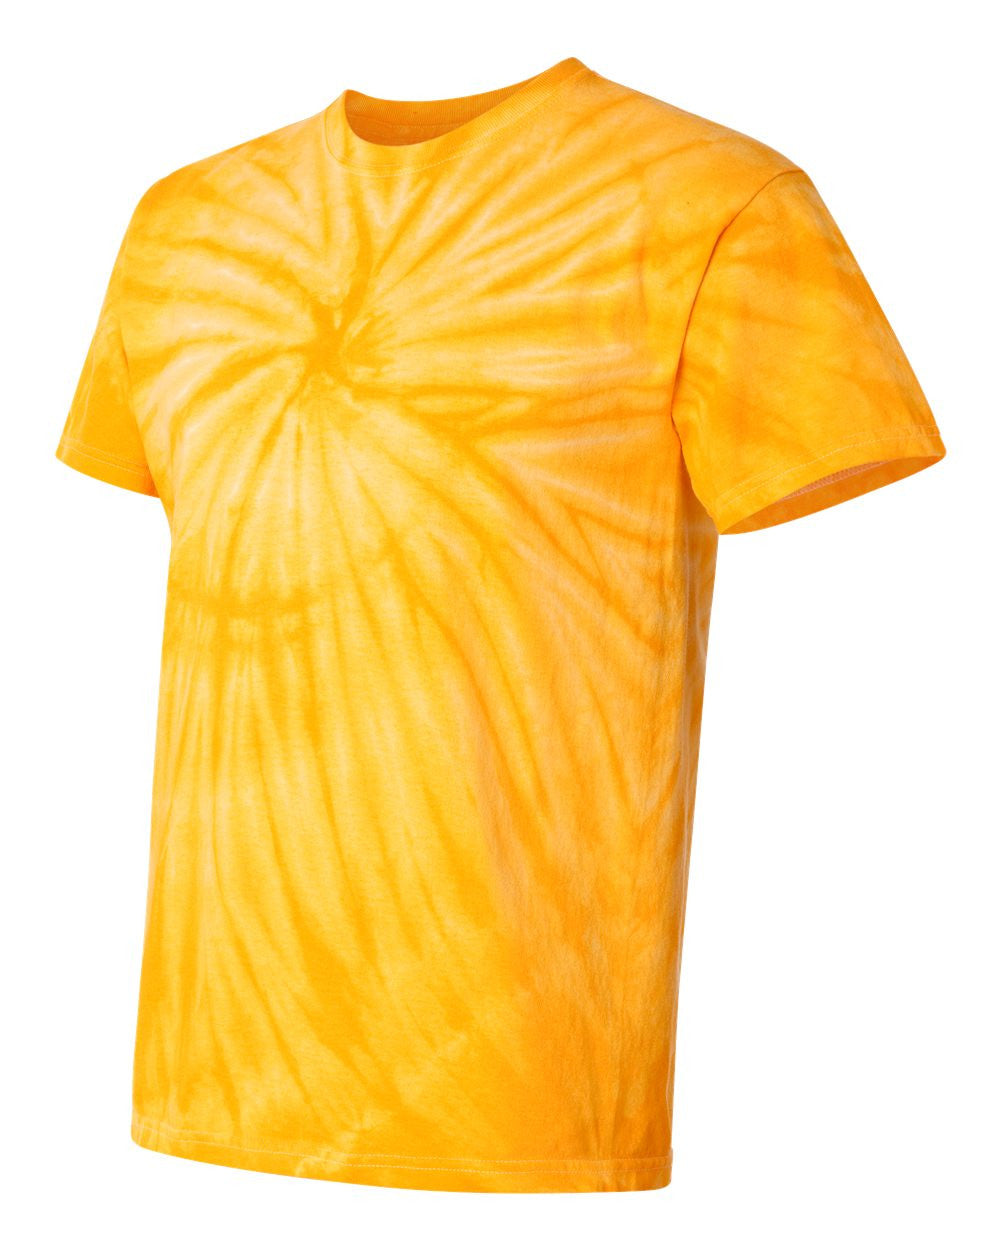 Tie and Dye T-shirt - Discountedrack.com